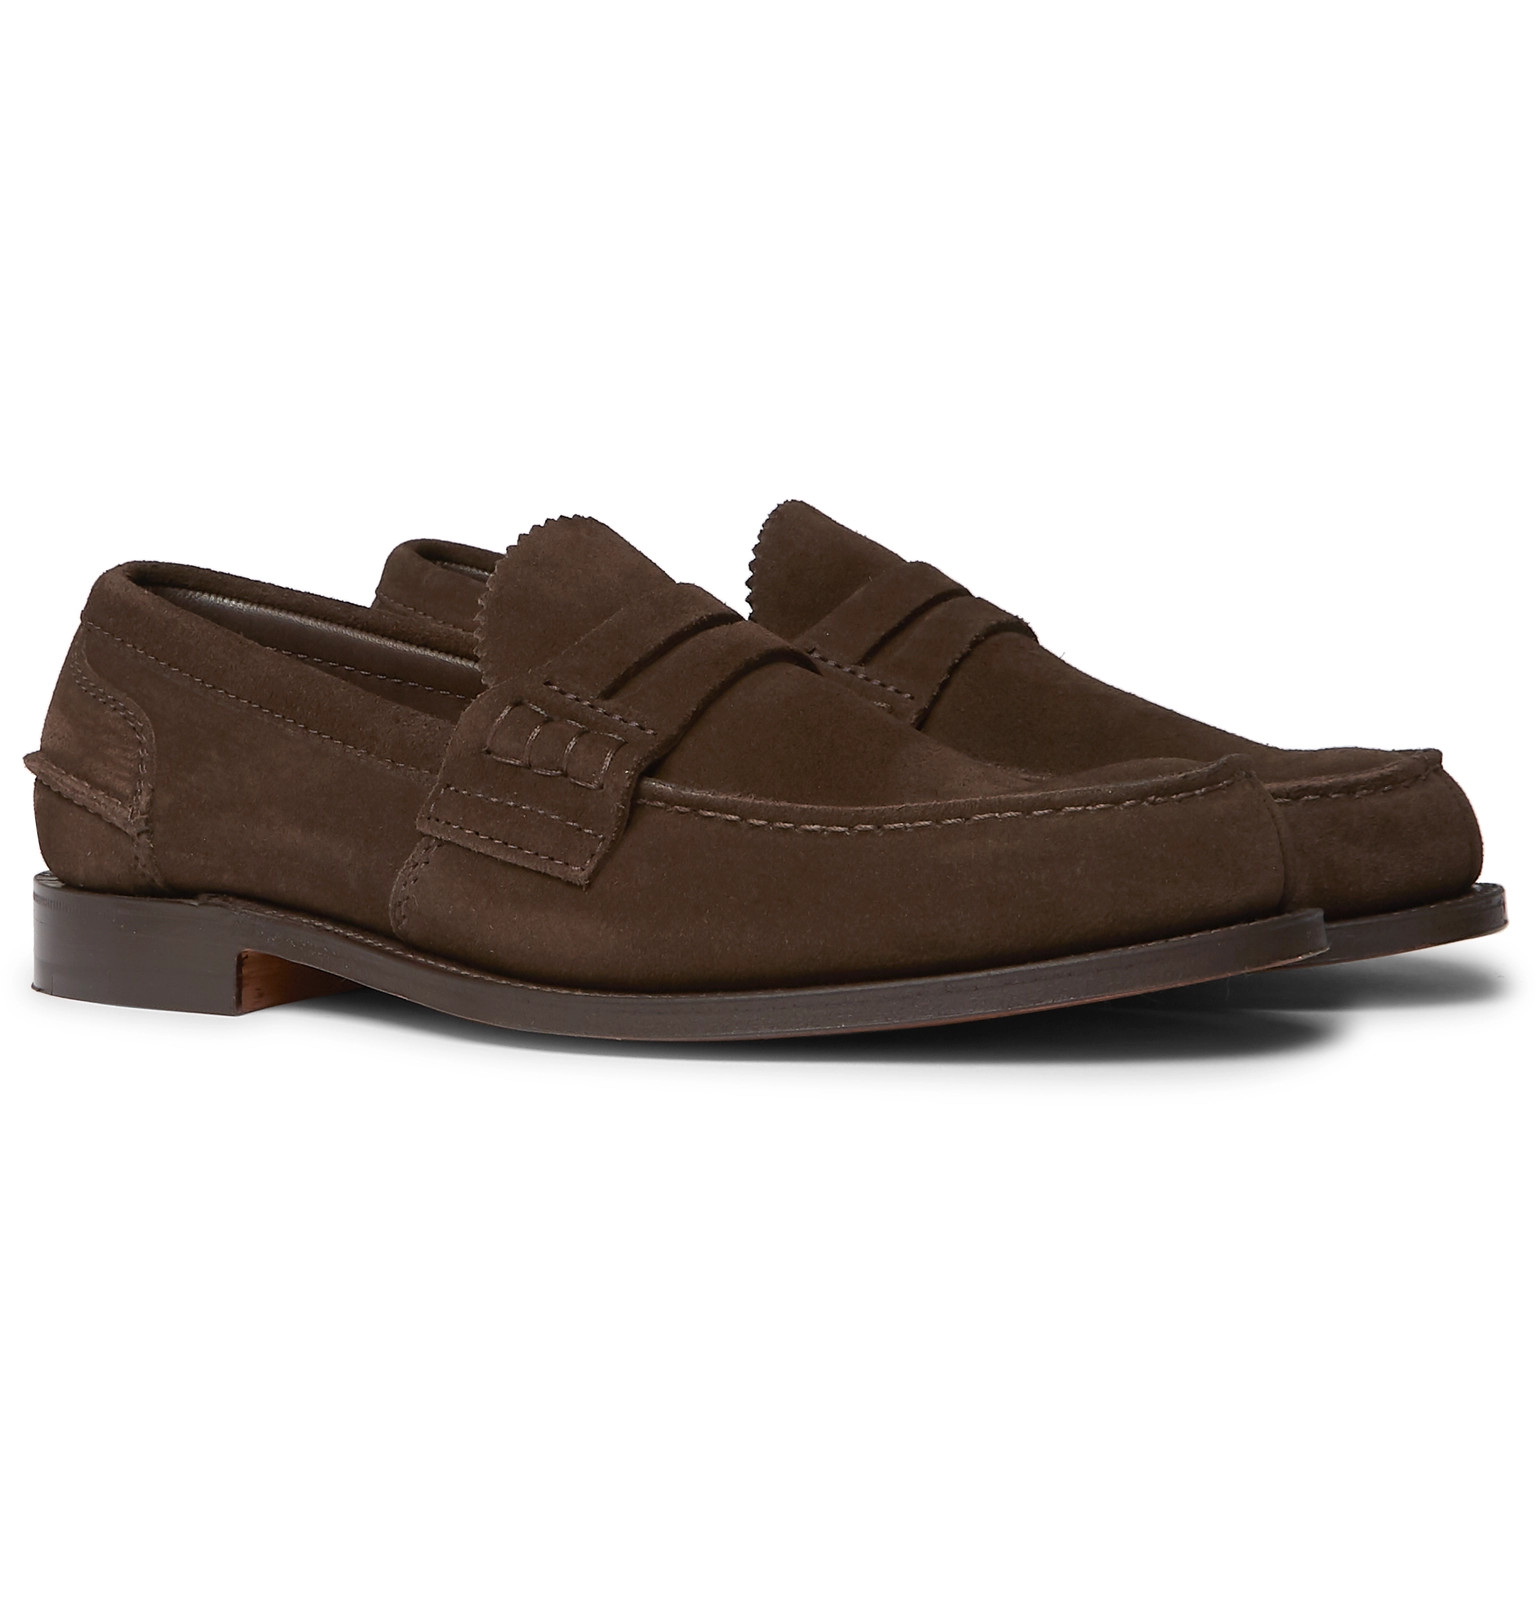 bf0b350fc07 Church s - Pembrey Suede Penny Loafers